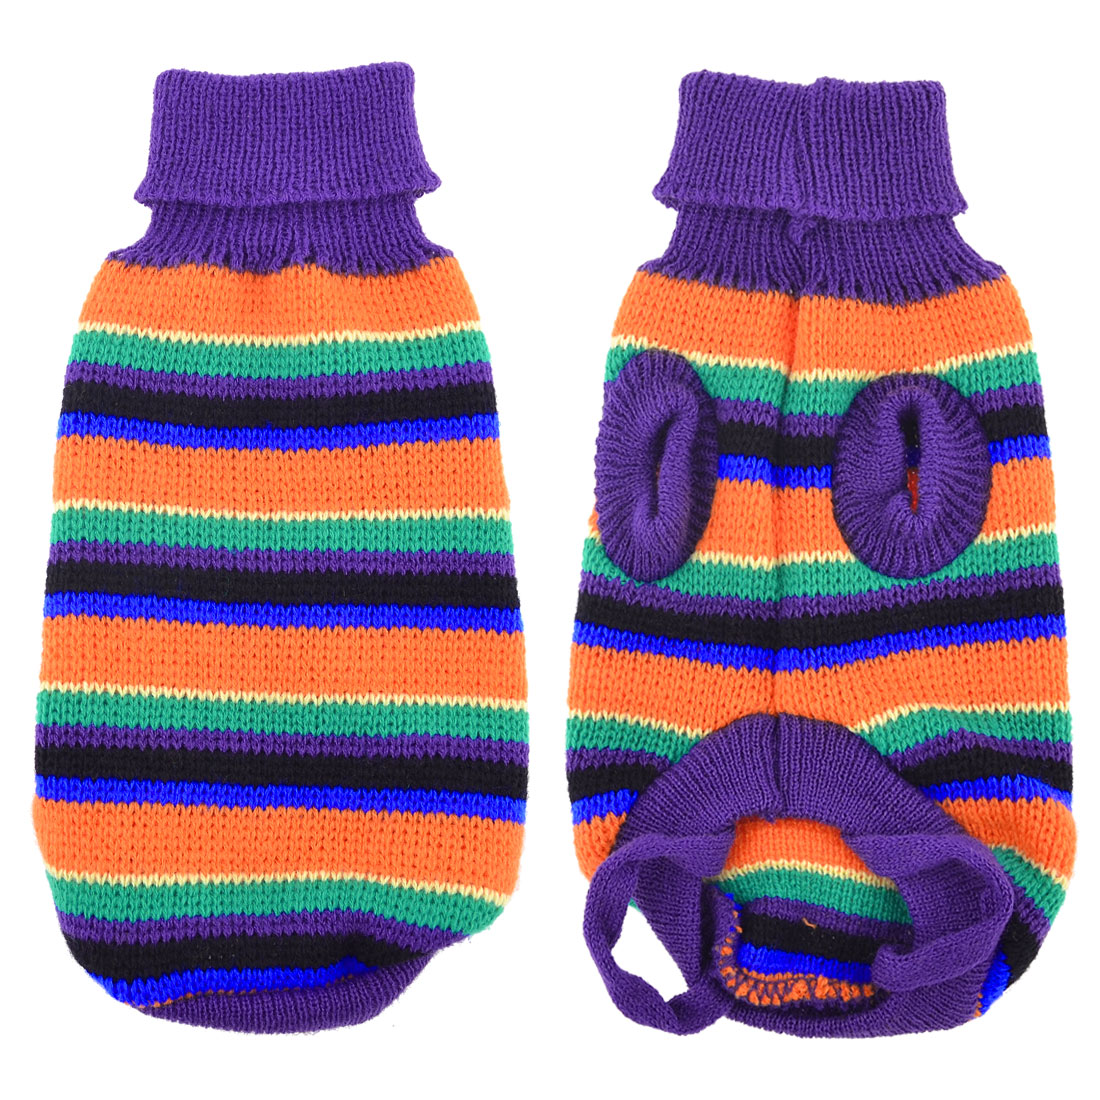 Purple Orange Knitted Striped Turtleneck Pet Dog Yorkie Sweater Apparel Size XS